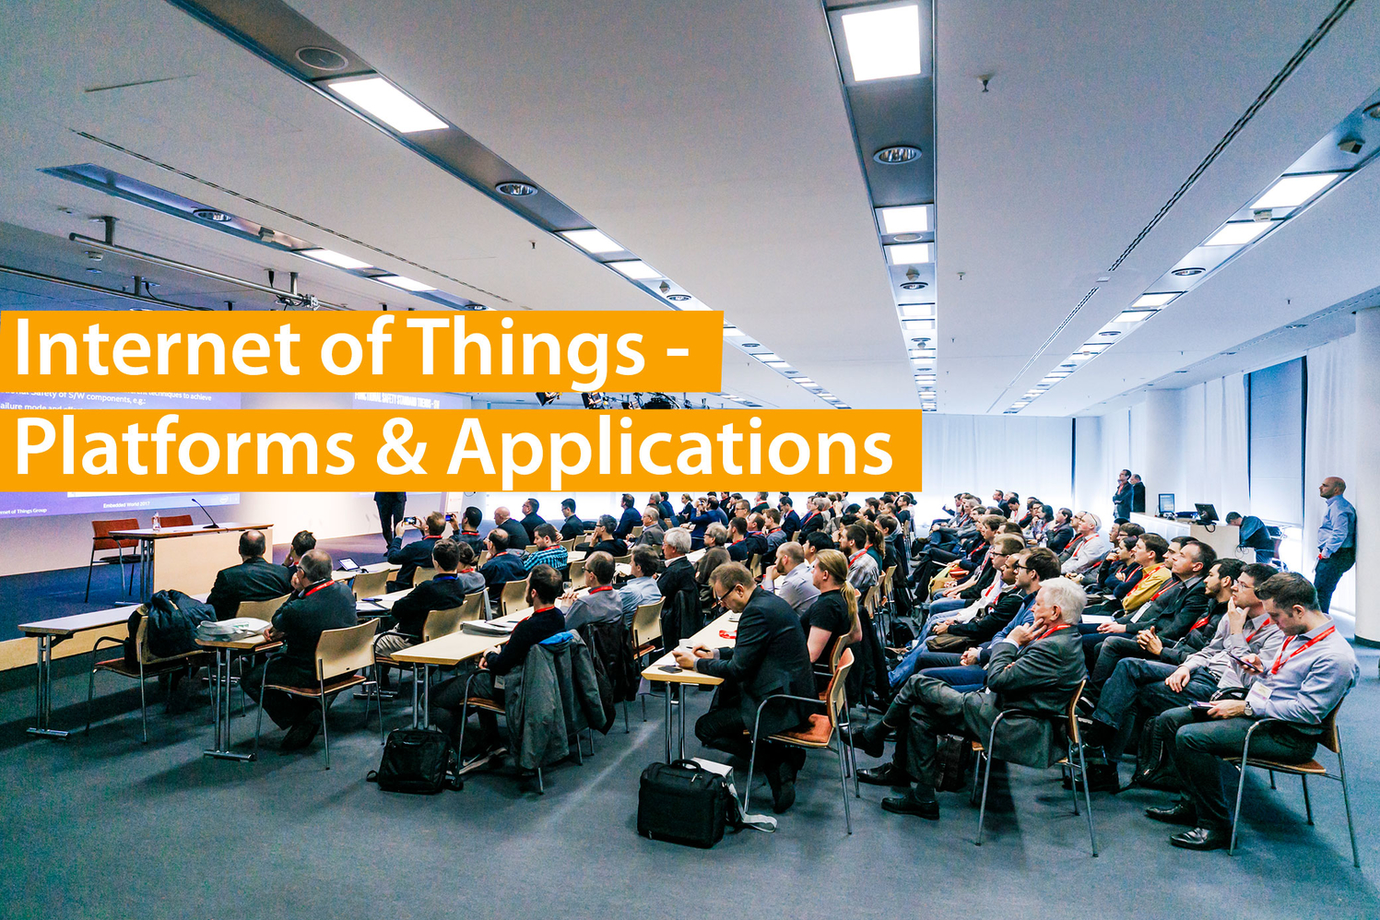 embedded world Conference - Internet of Things - Platforms & Applications